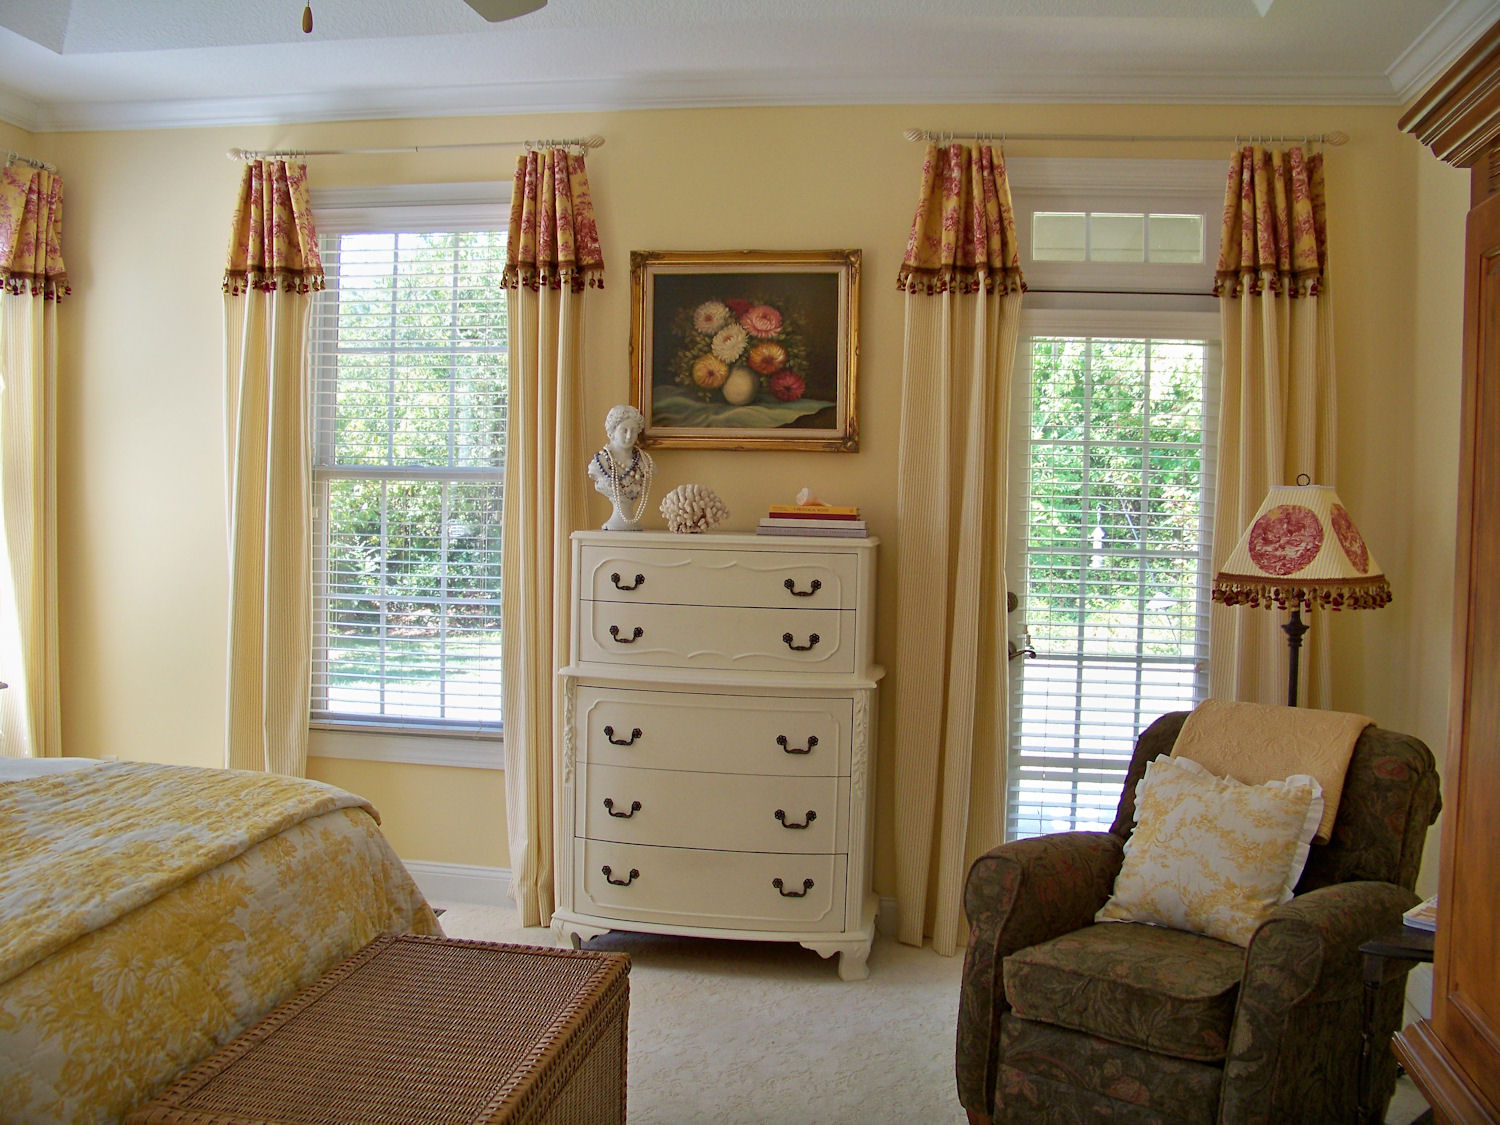 The Comforts Of Home: Master Bedroom Curtain Reveal